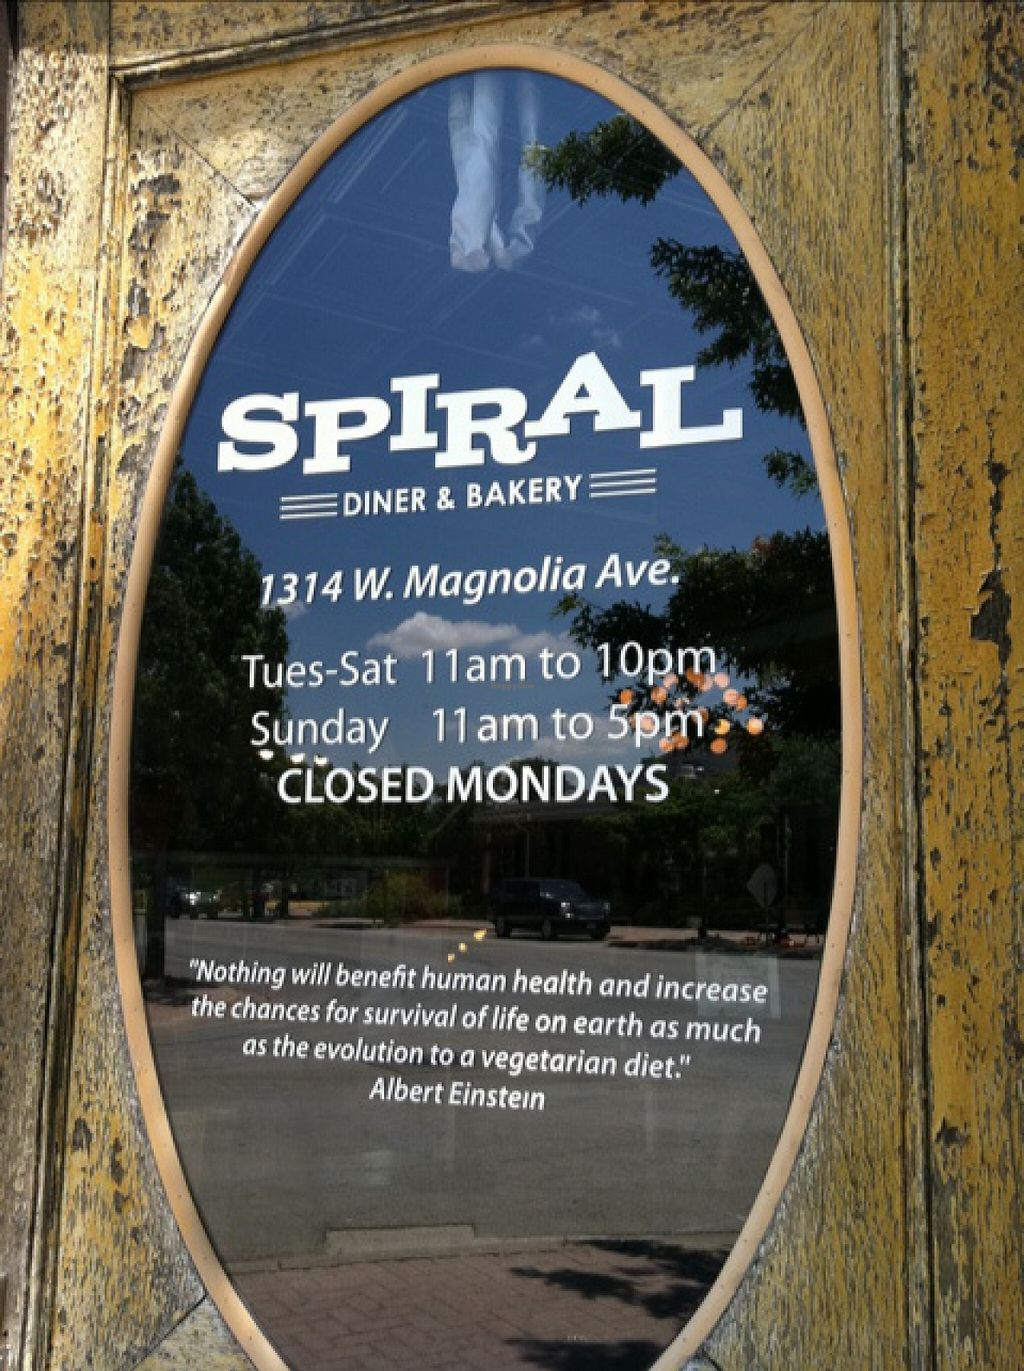 "Photo of Spiral Diner & Bakery  by <a href=""/members/profile/veganlove777"">veganlove777</a> <br/>Outside door of the Spiral Diner <br/> November 27, 2015  - <a href='/contact/abuse/image/2539/126293'>Report</a>"